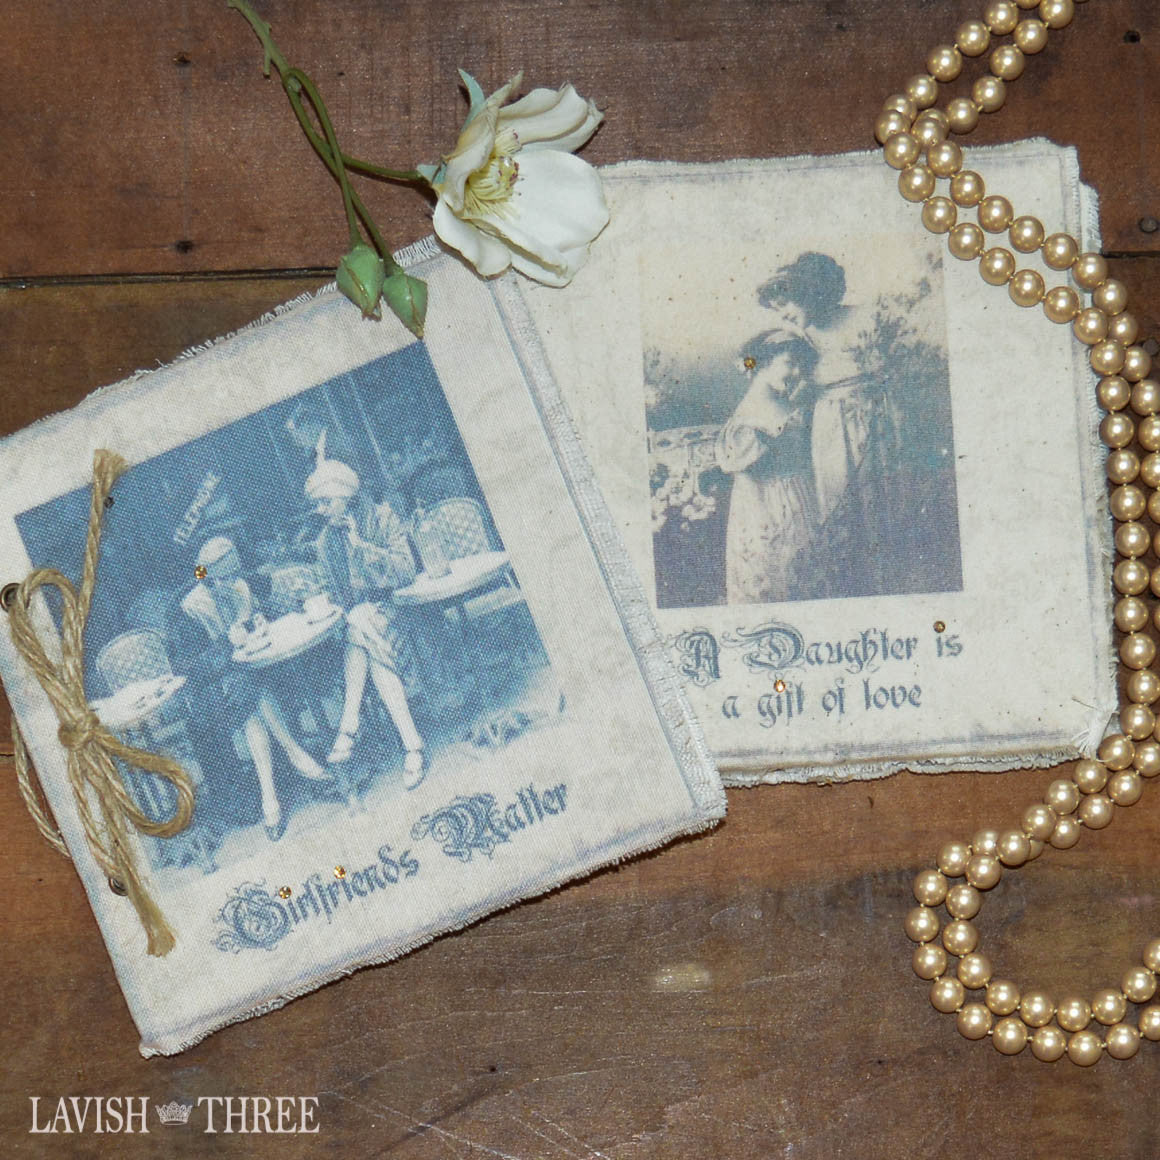 Parisian inspired journals; Girlfriends Matter and A Daughter is a Gift of Love.